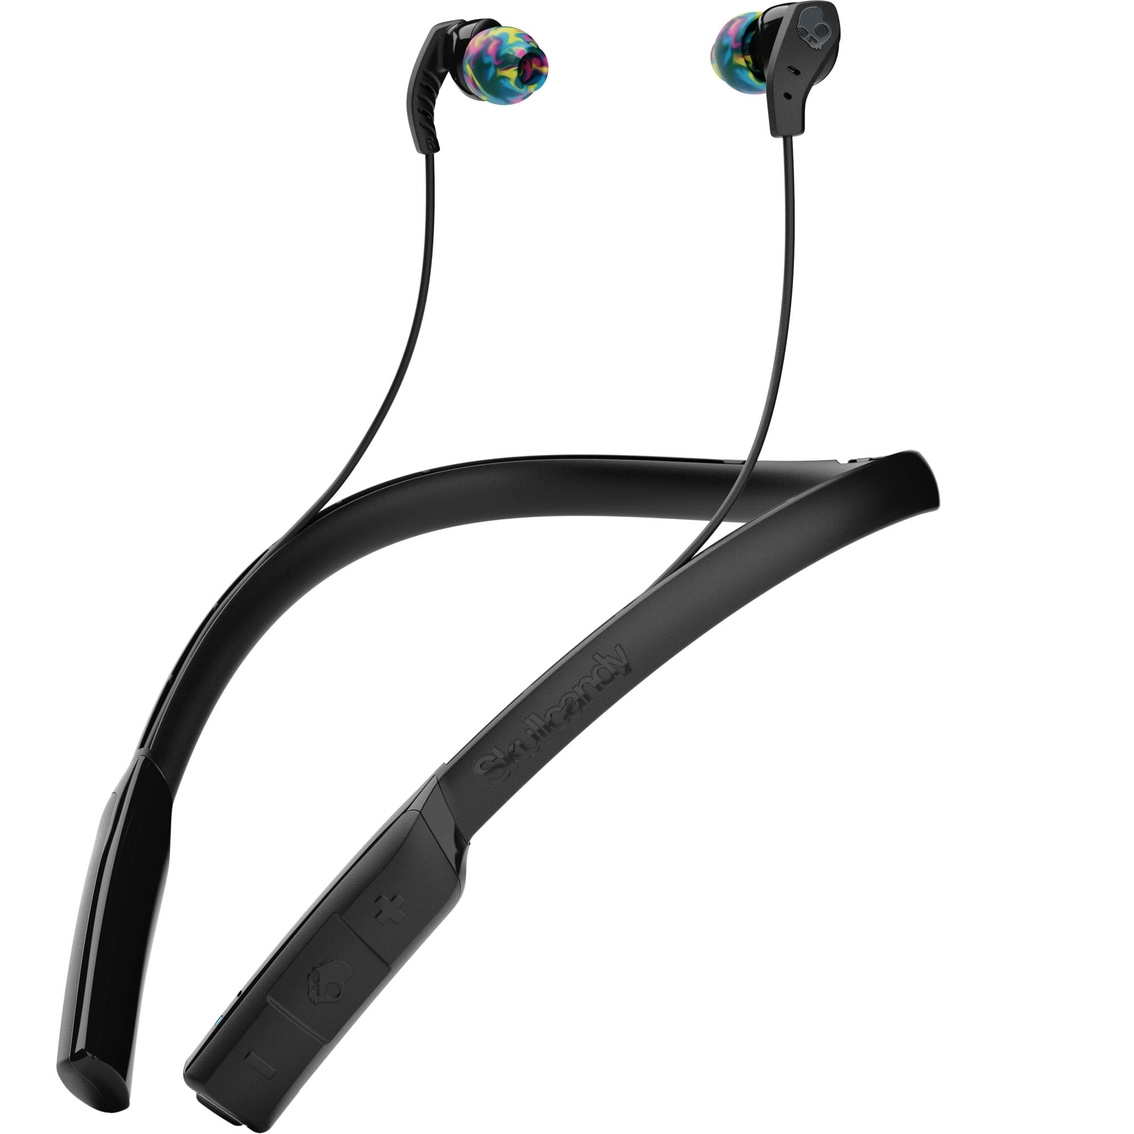 hight resolution of skullcandy method wireless headphones with microphone